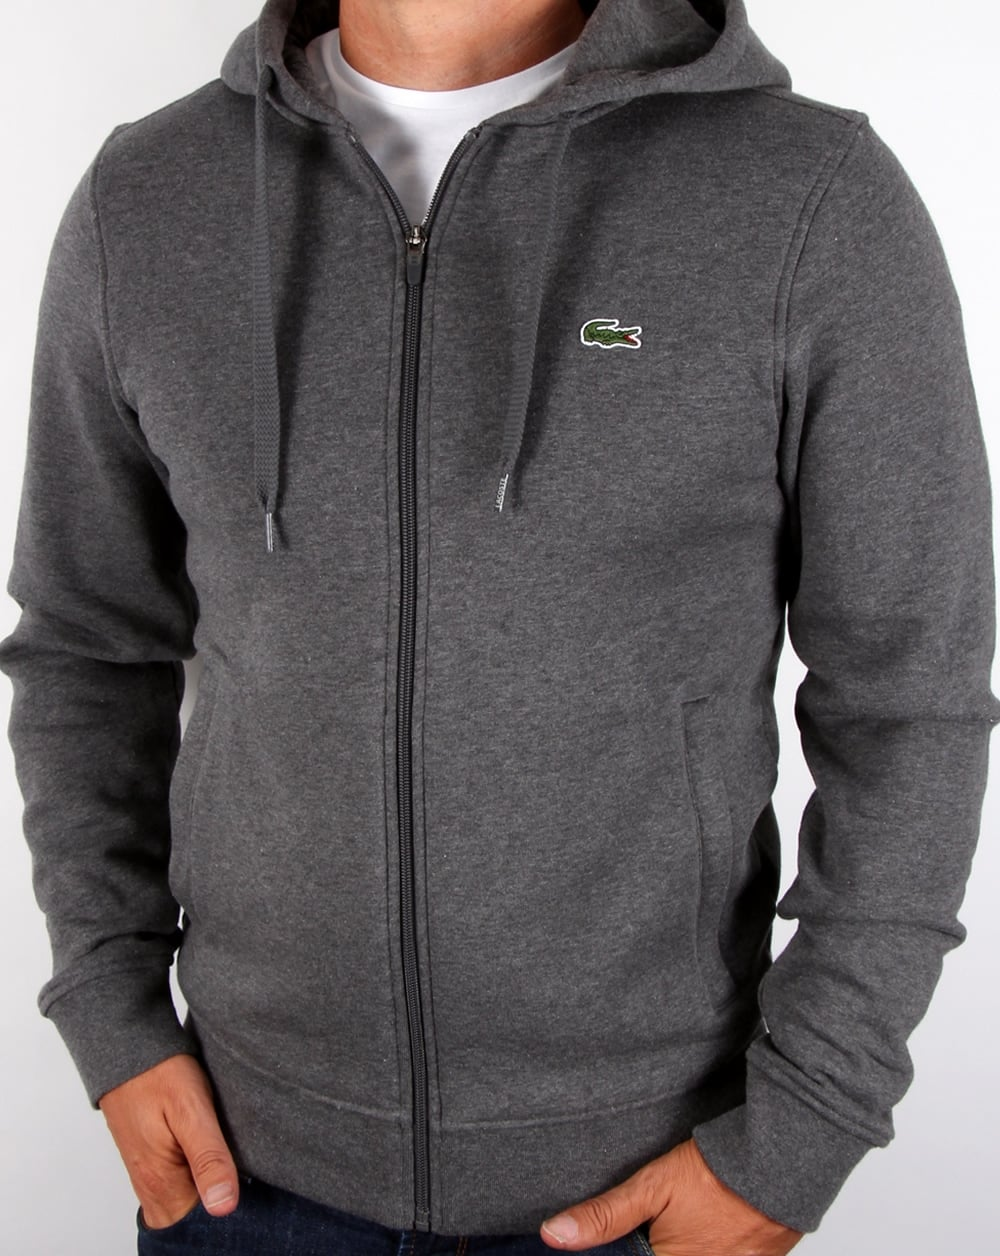 4bda8a68b8b43 Lacoste Lacoste Hooded Full Zip Sweatshirt Dark Grey